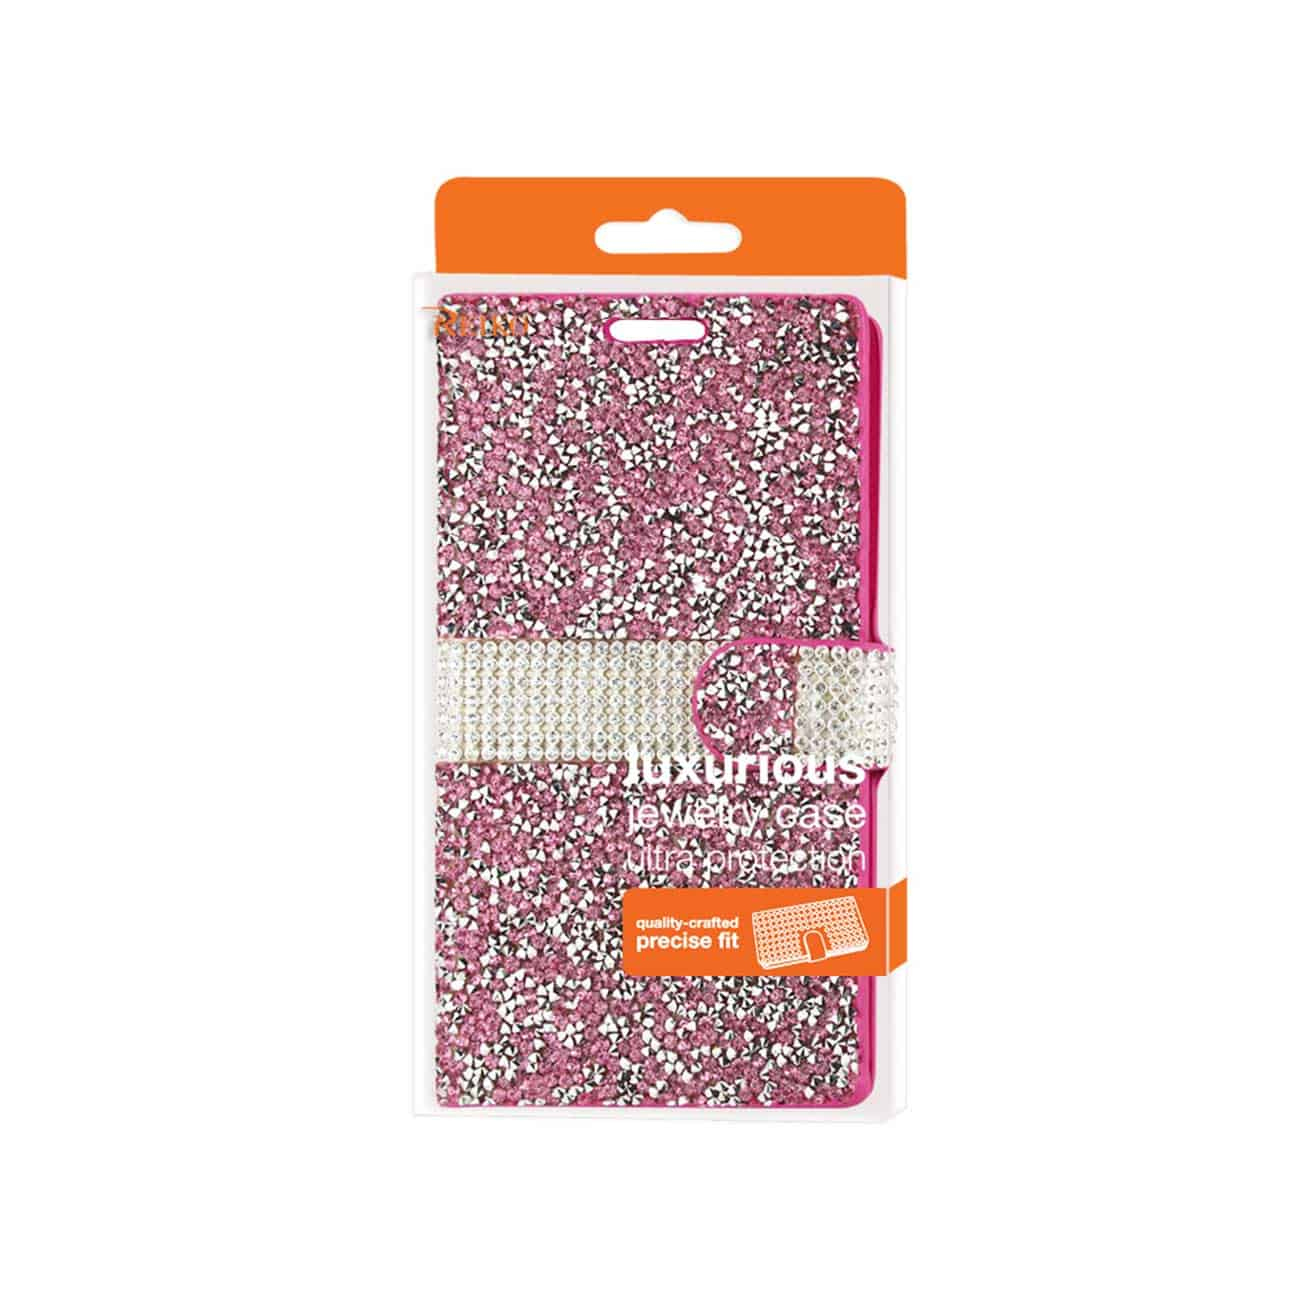 LG V10 JEWELRY RHINESTONE WALLET CASE IN PINK